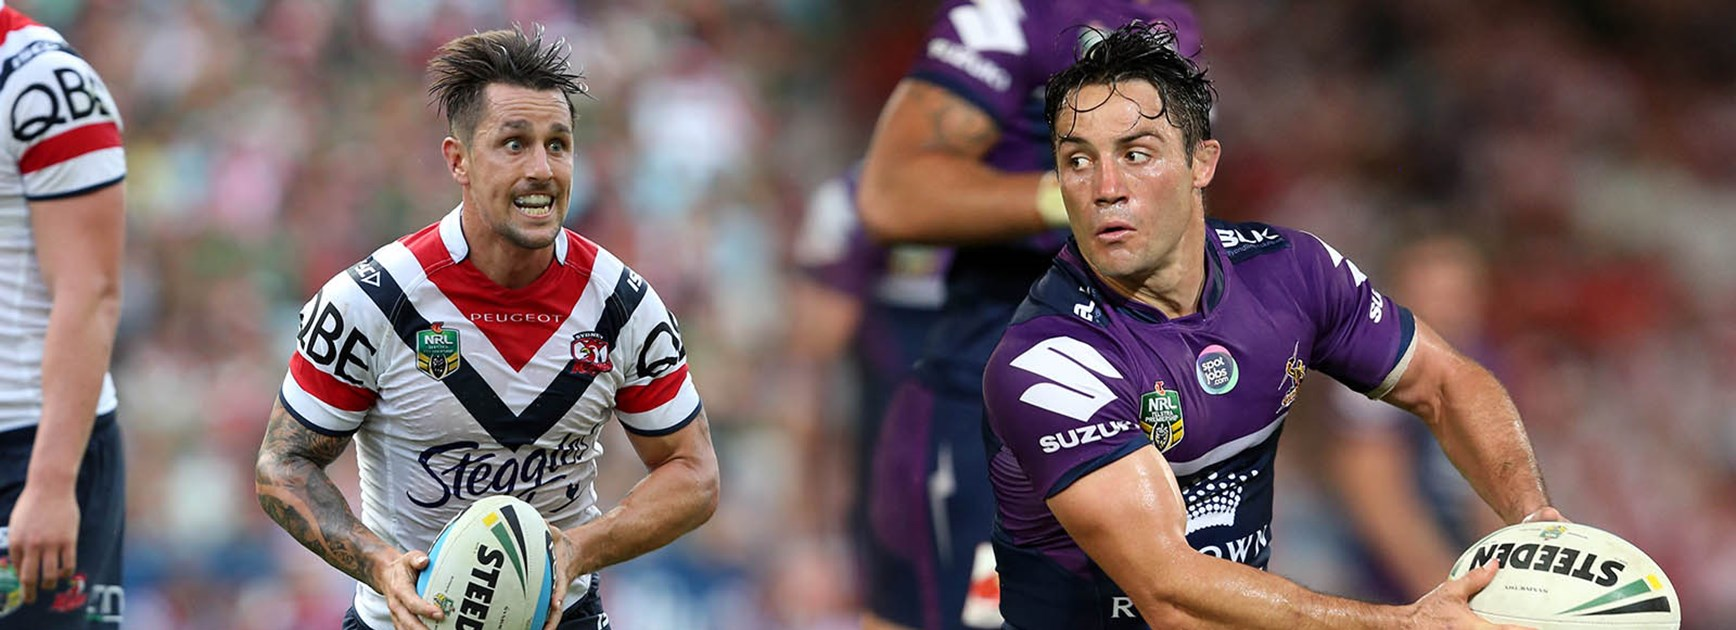 Twice a Mitch Pearce led side has been defeated by a Cooper Cronk field goal. Will it happen a third time on Monday night?